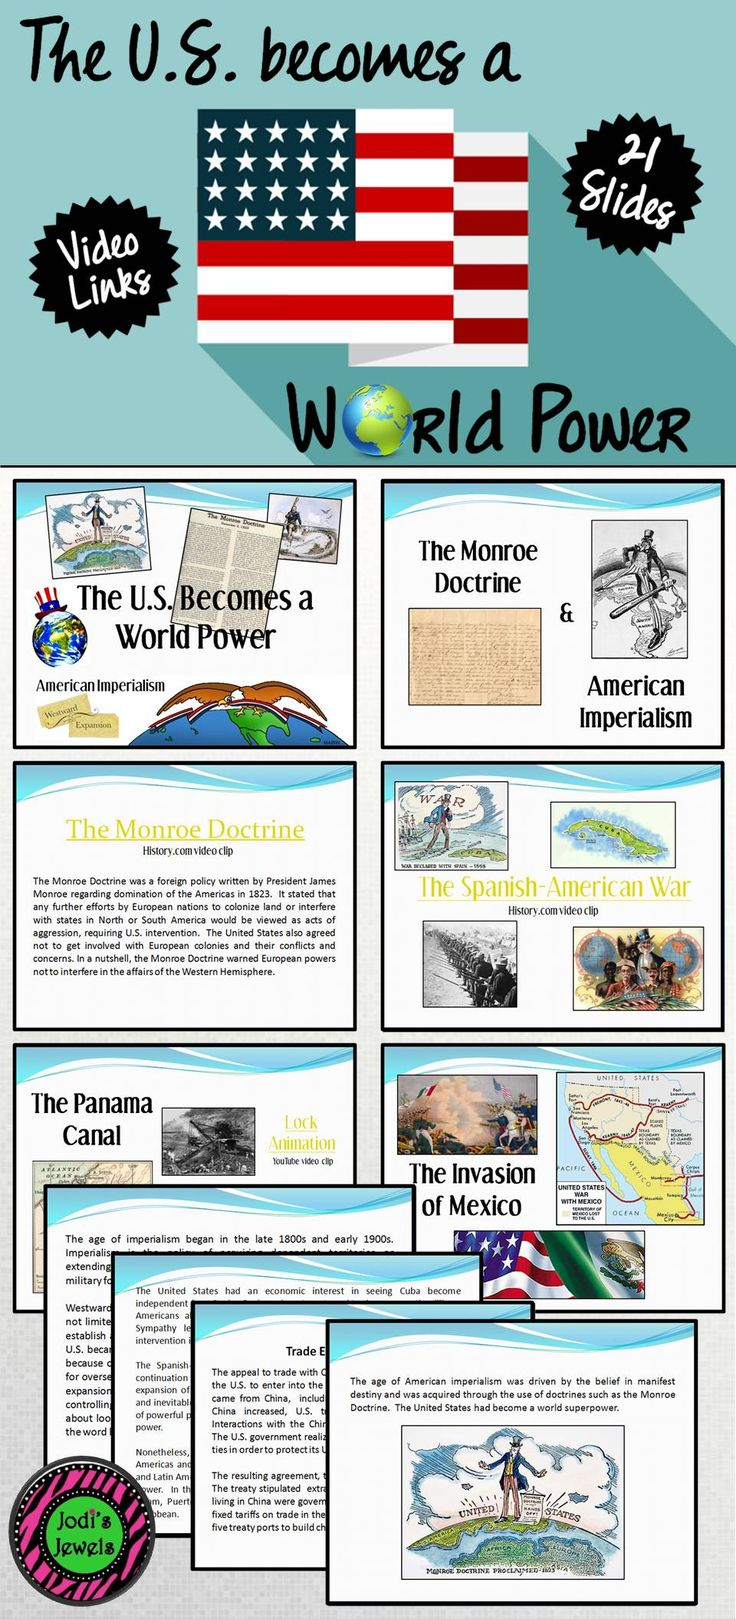 american imperialism in the late 1800s Get an answer for 'what motivated american imperialism relate the main motivations and events of american imperialism and foreign policy in the late 1800s and early 1900s' and find homework help .